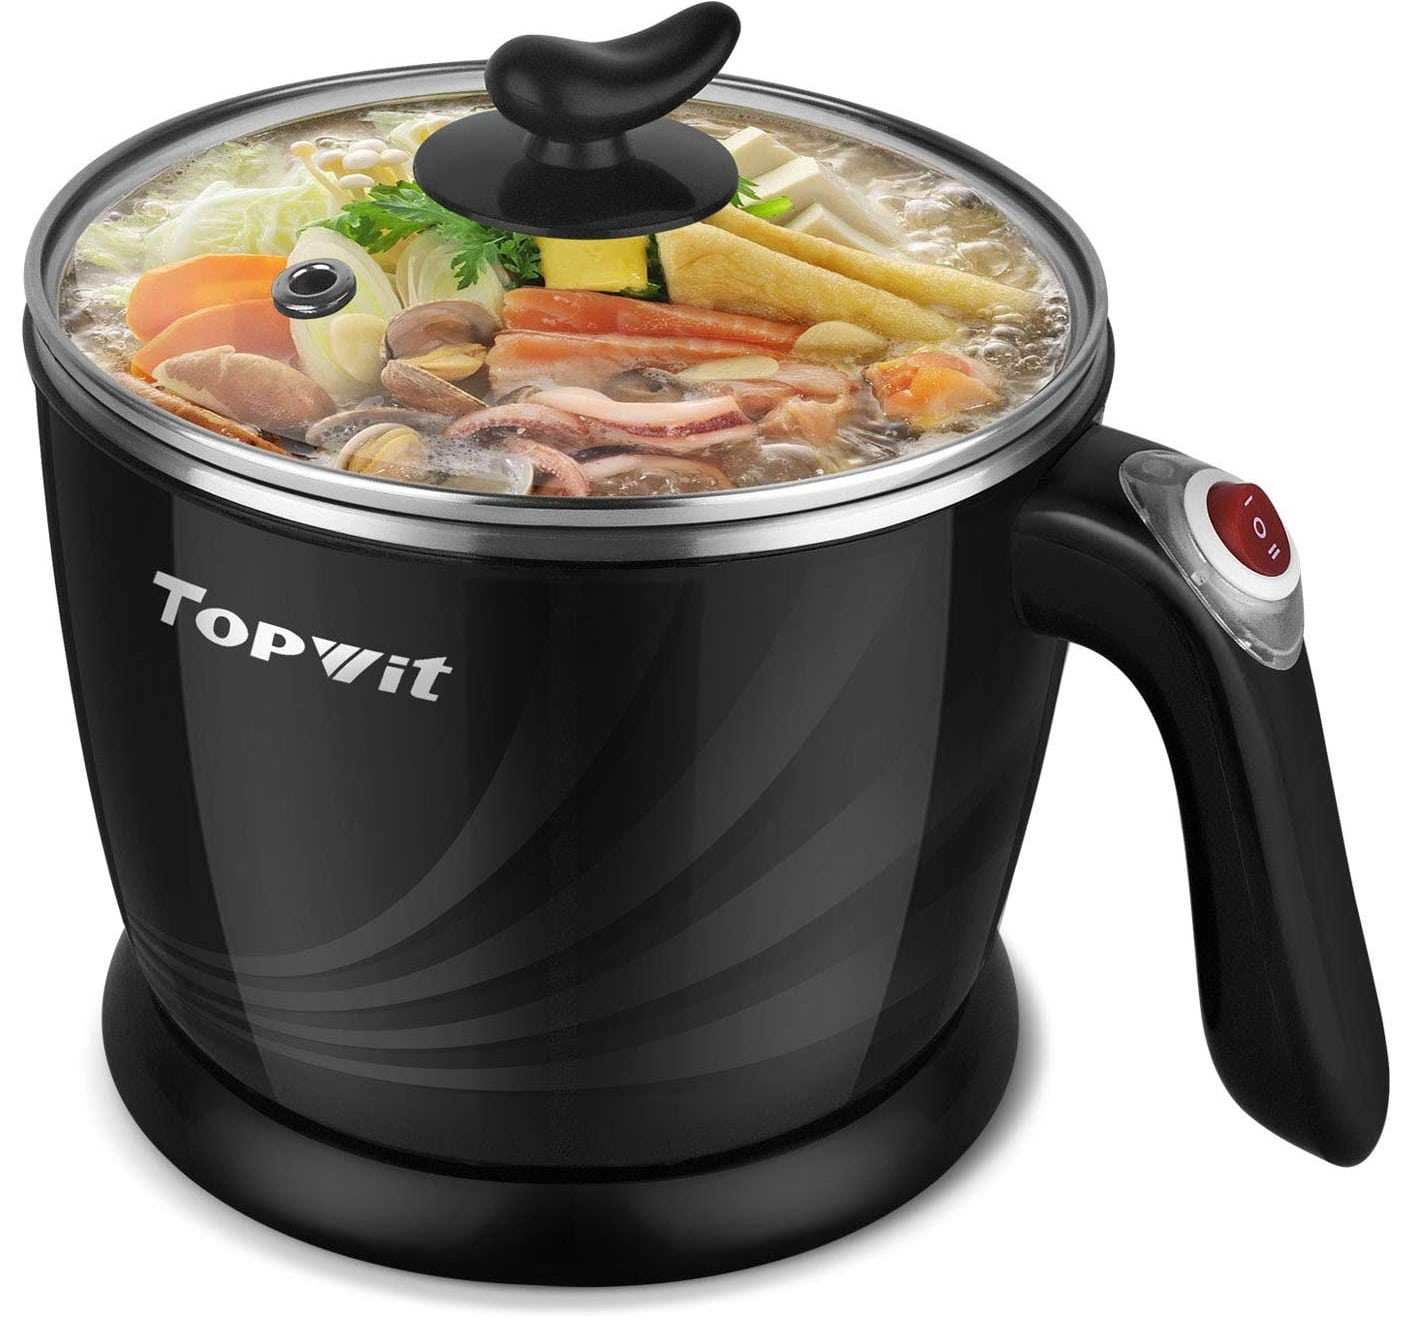 1.Topwit Electric Hot Pot Mini, Electric Cooker, Noodles Cooker, Electric Kettle with Multi-Function for Steam, Egg, Soup